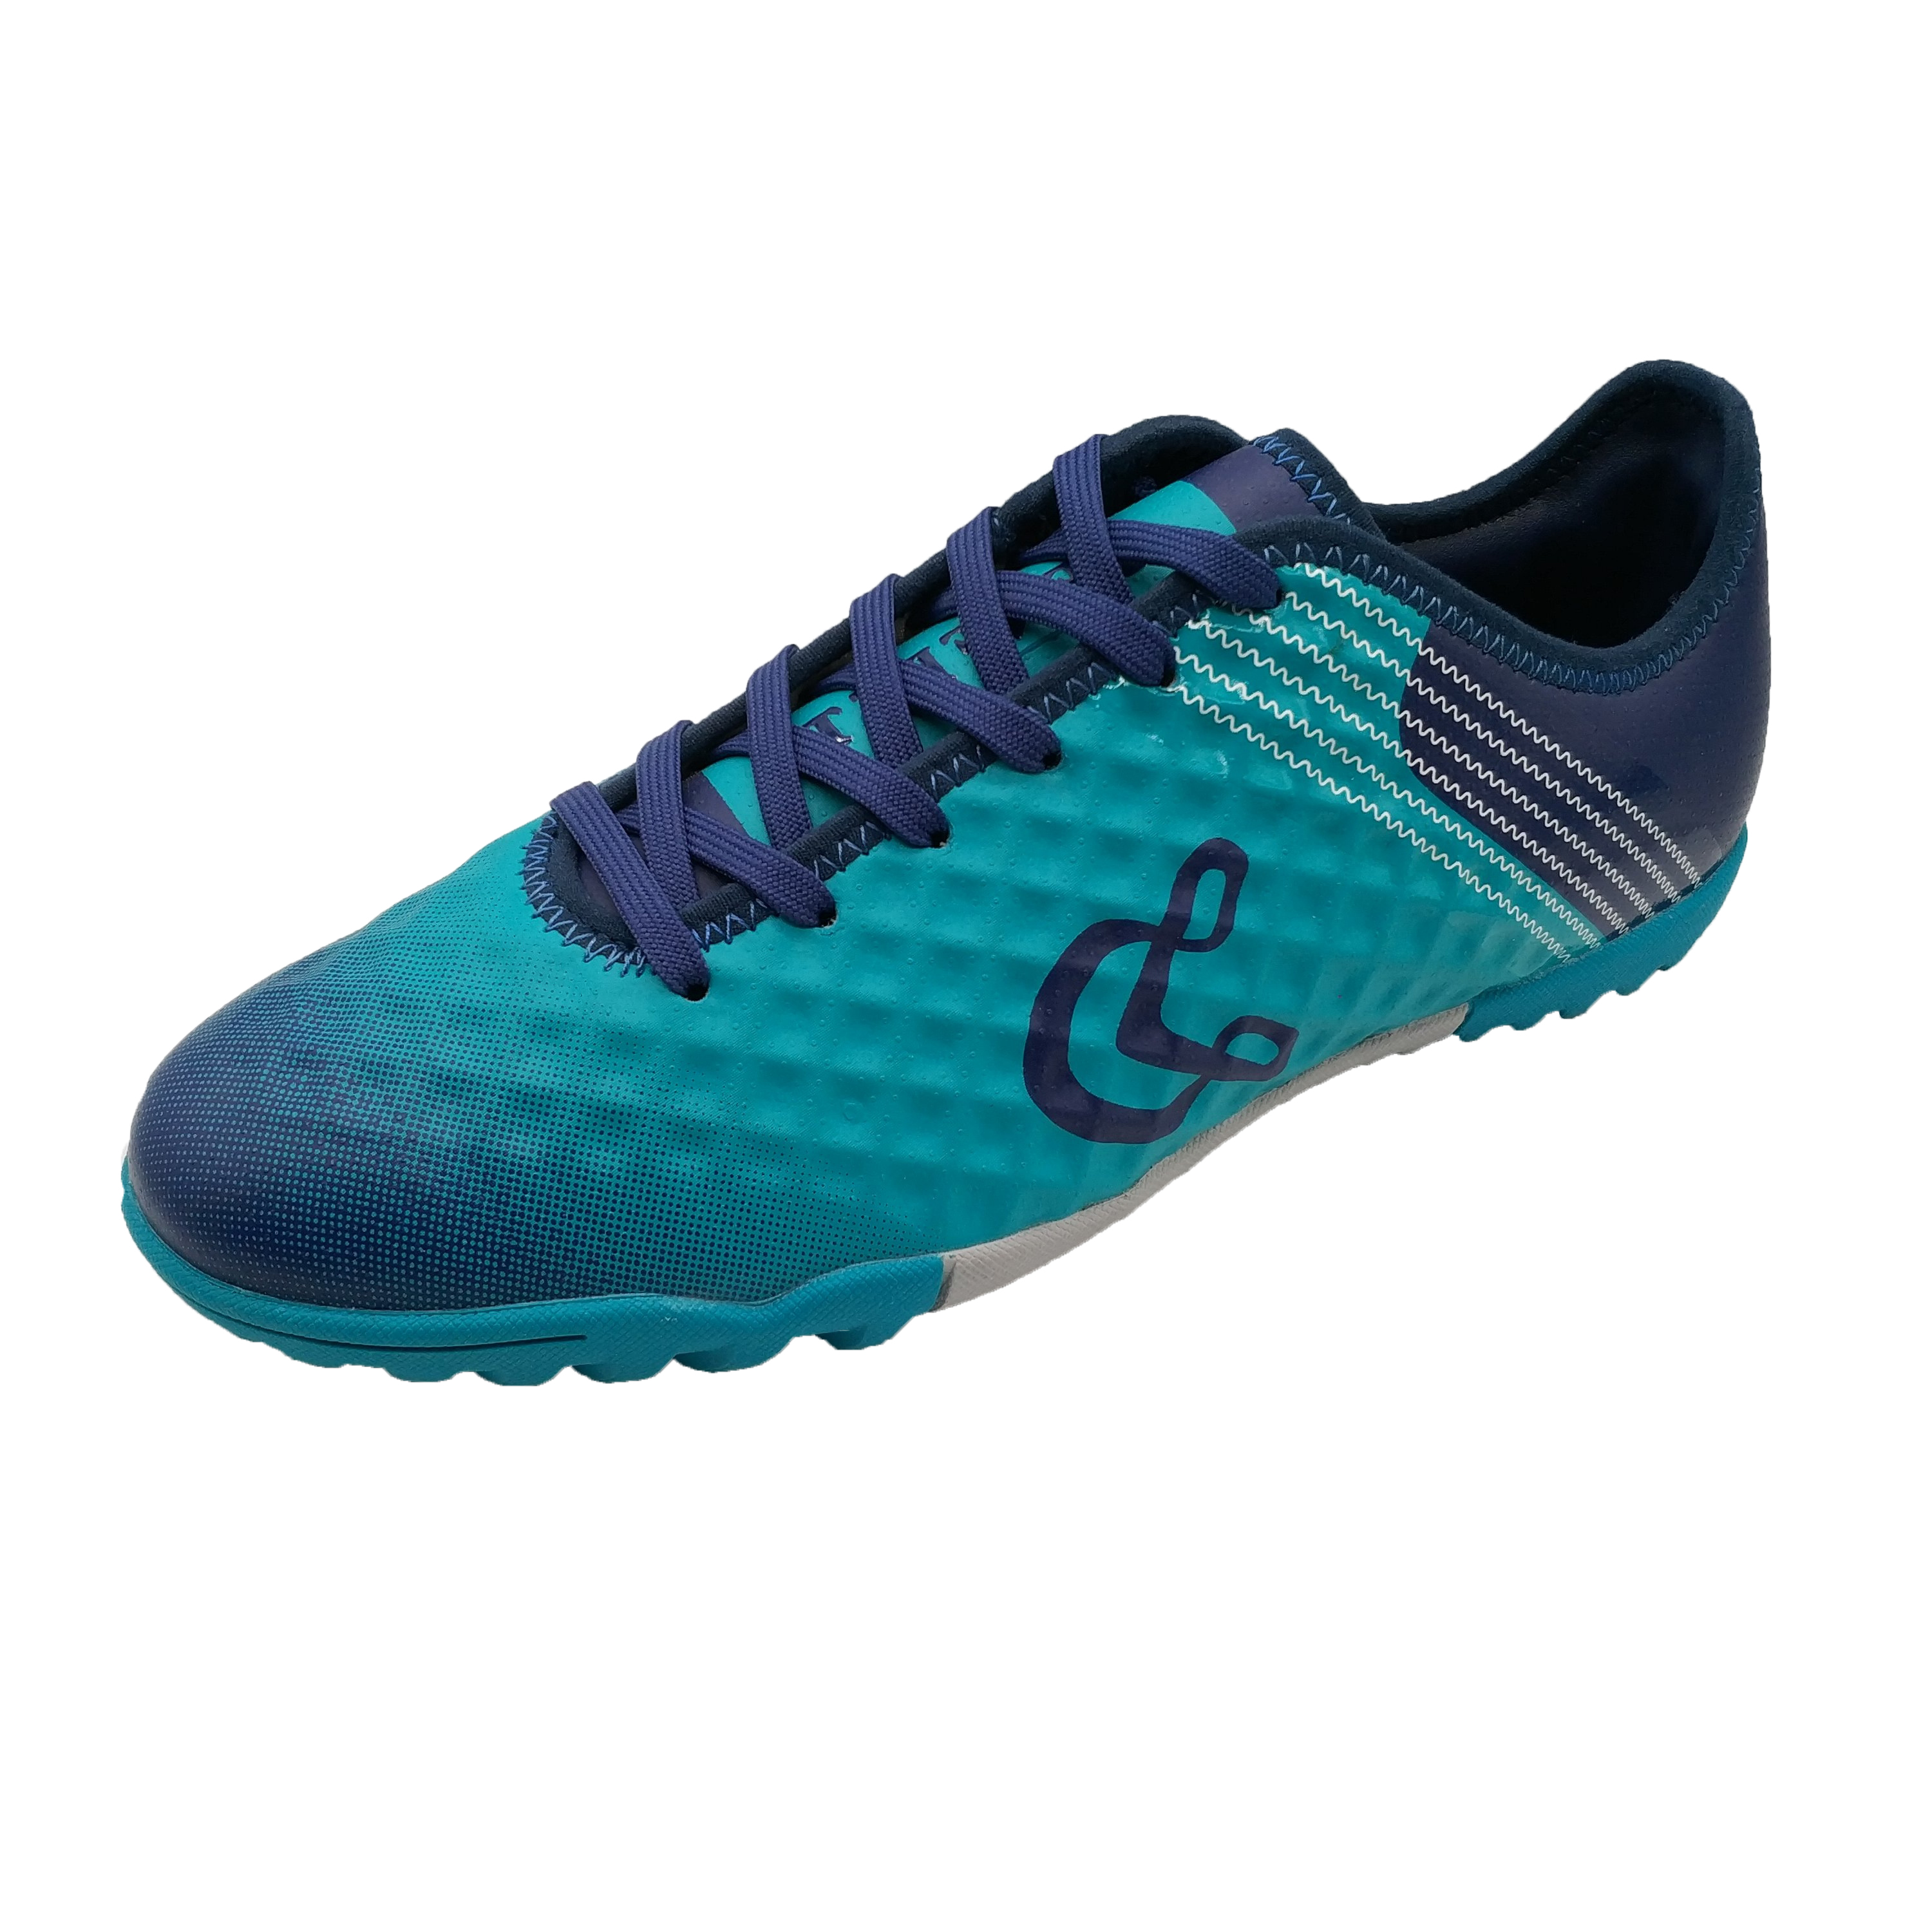 Youth Soccer Shoes Outdoor Turf Football Shoes